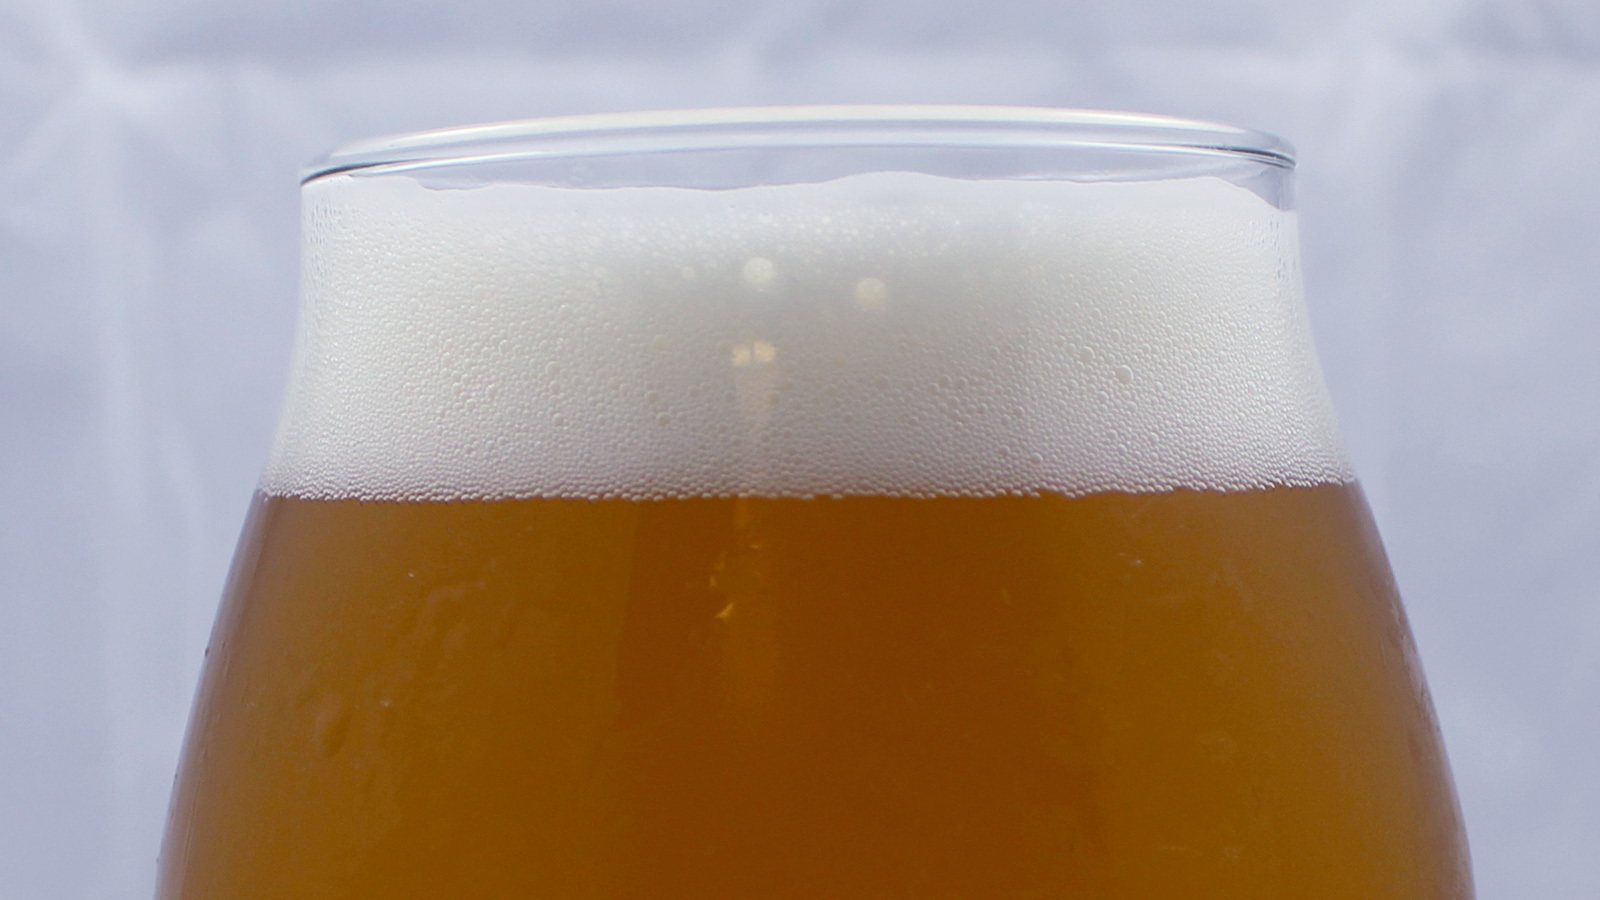 Close-up of the foam on top of a beer glass